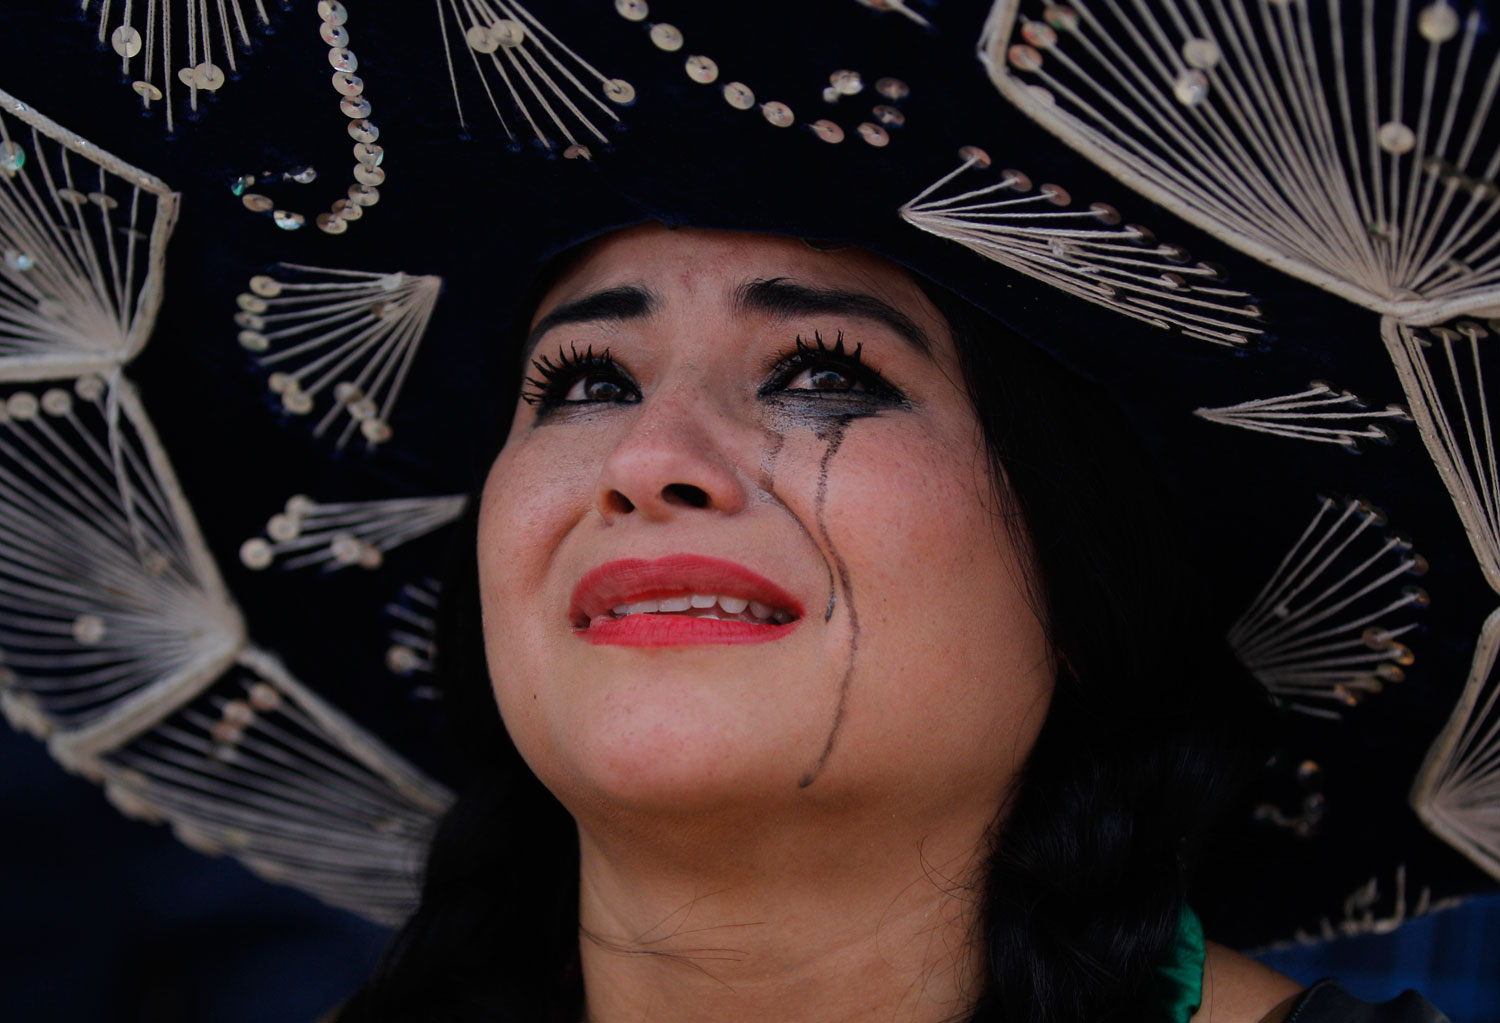 Netherlands vs. Mexico 2-1                                                              A Mexico soccer fan cries after her team was defeated, on Copacabana beach in Rio de Janeiro on June 29, 2014.